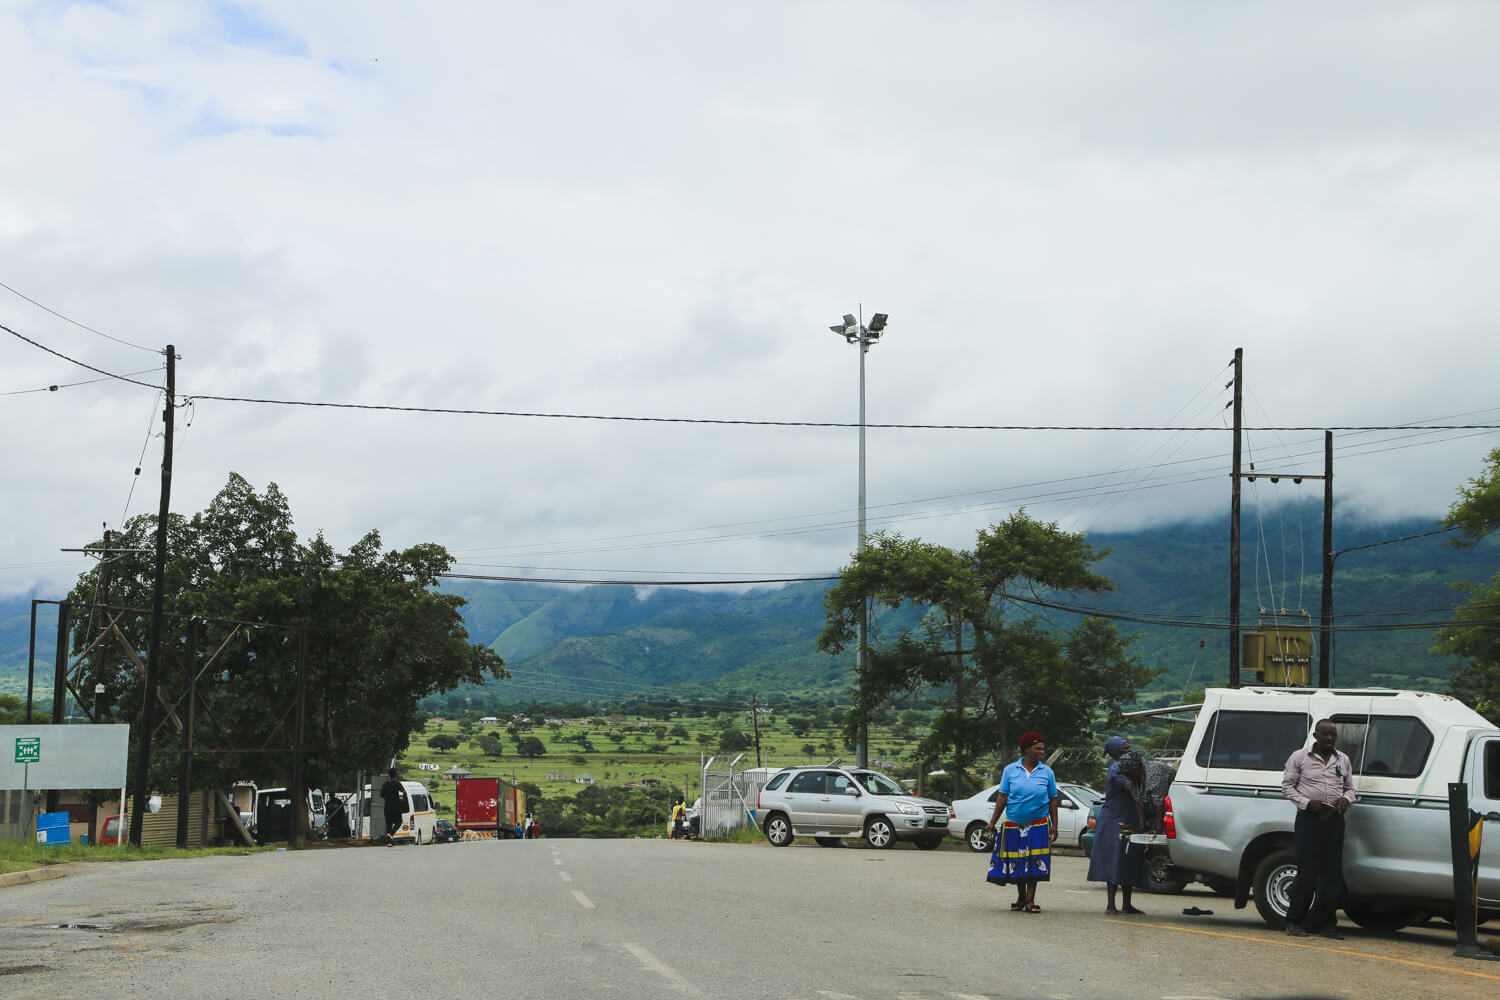 Crossing the border to Swaziland from South Africa